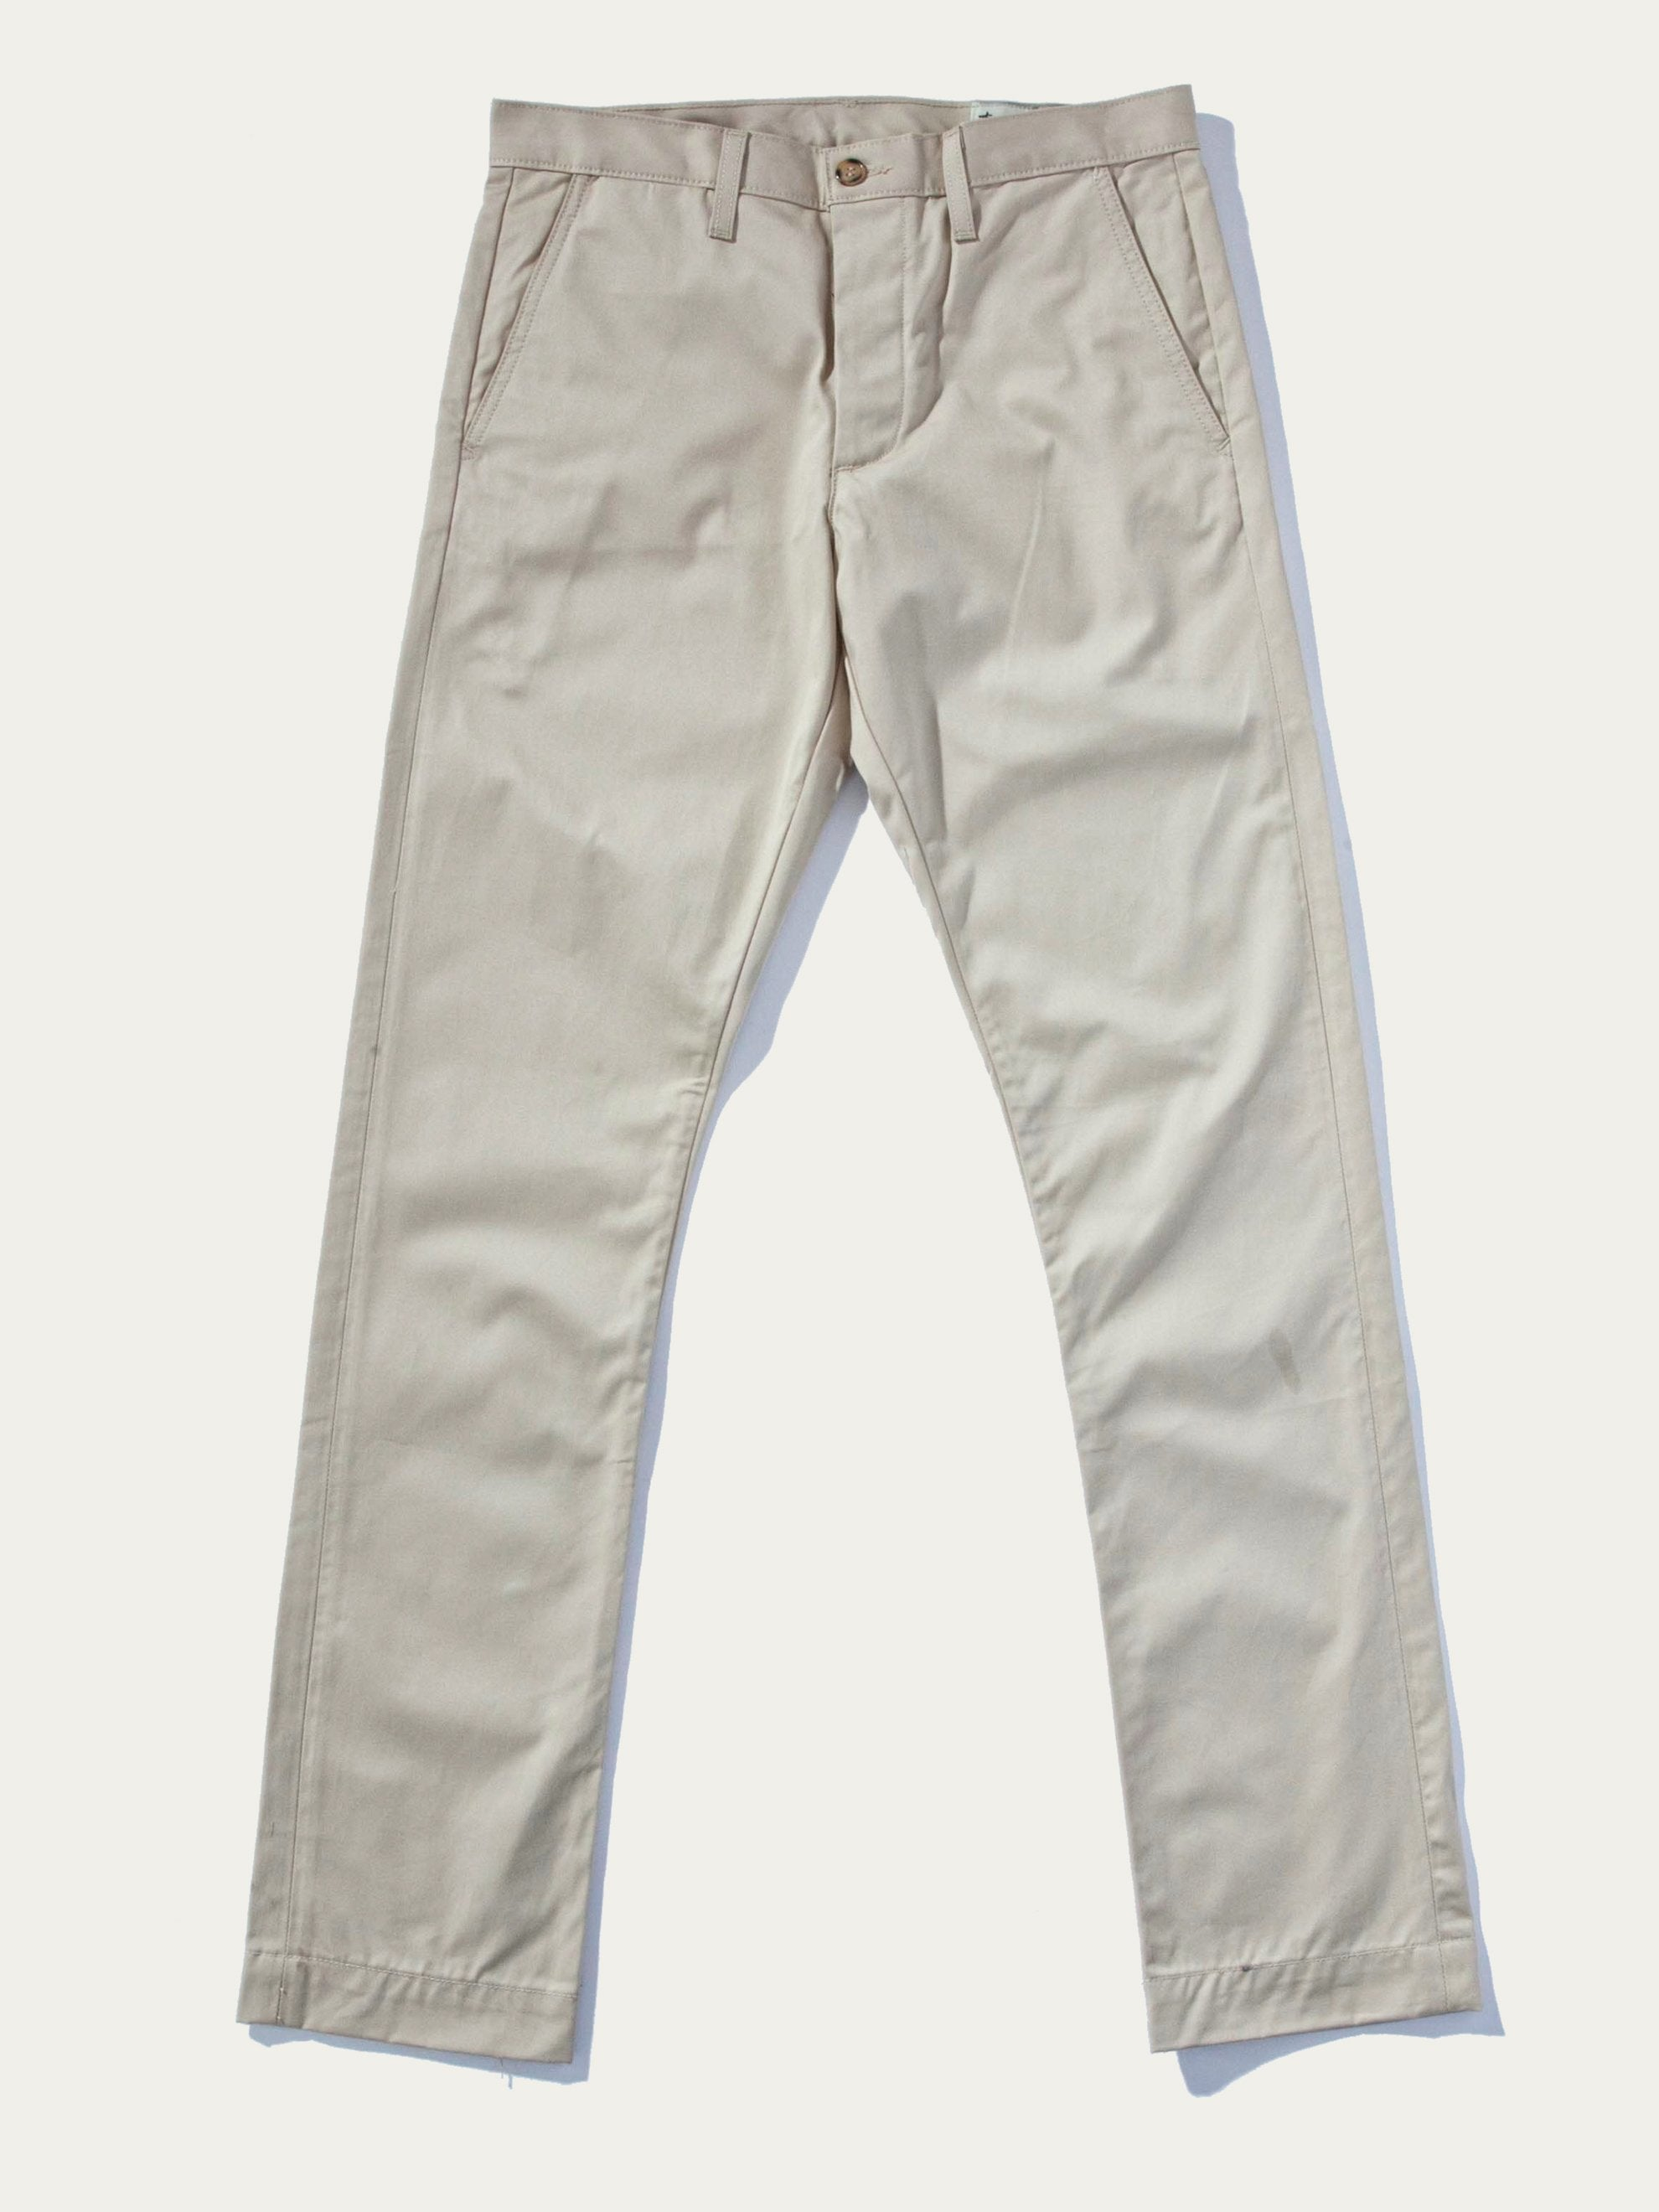 Khaki Shop Class Drop Out Pant 1